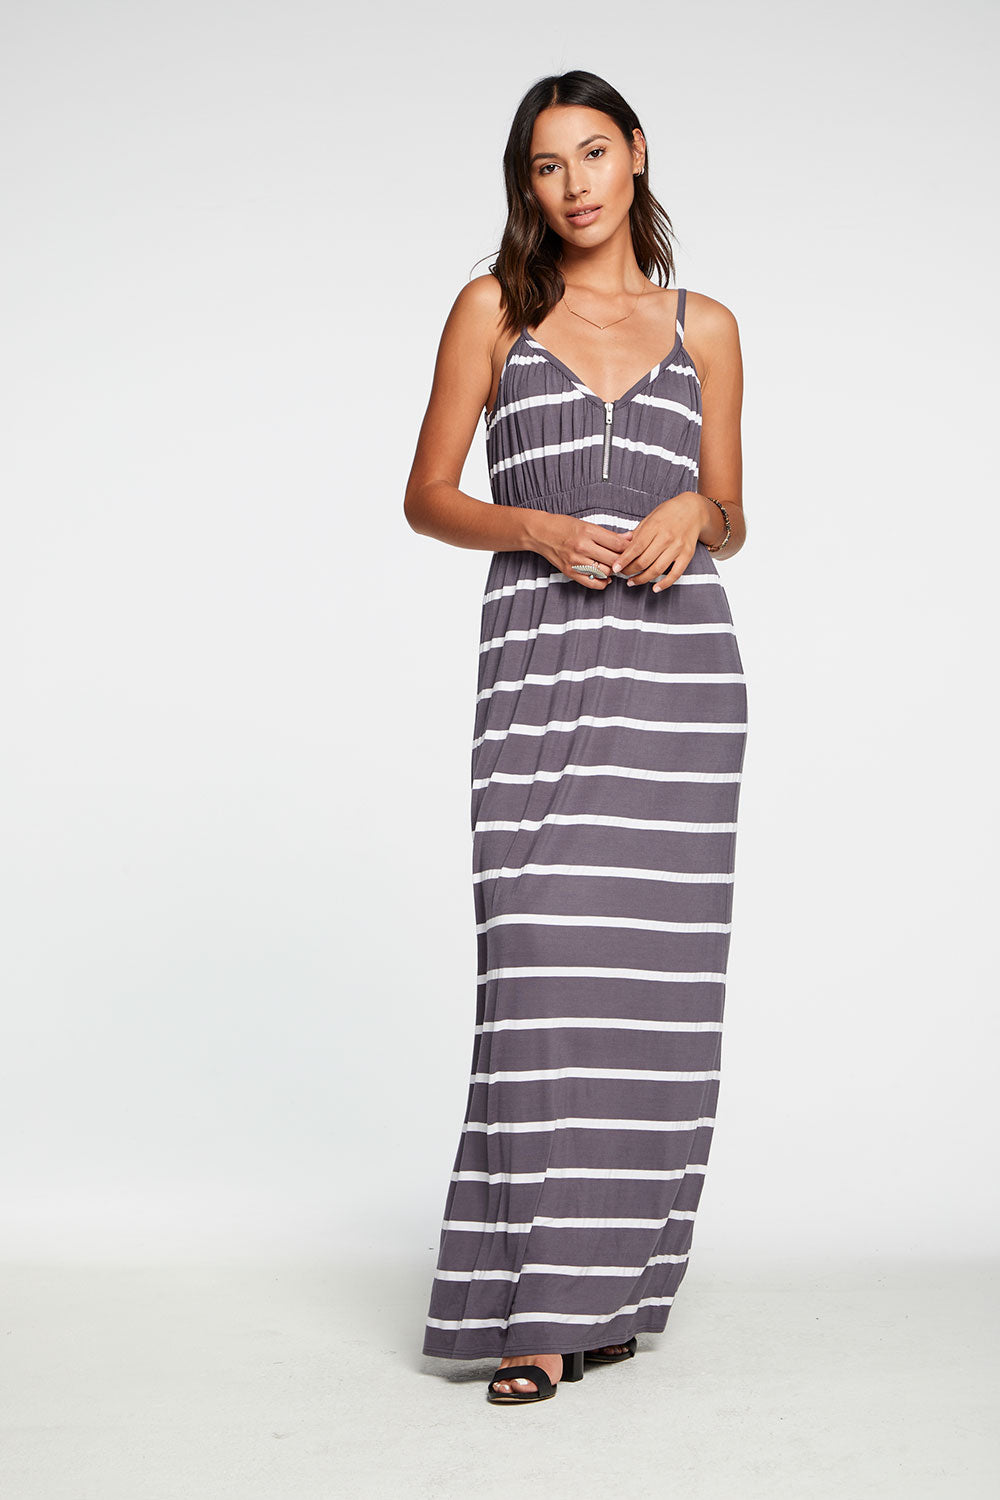 Cool Jersey Shirred Double V Cami Maxi Dress in Stripe WOMENS chaserbrand4.myshopify.com